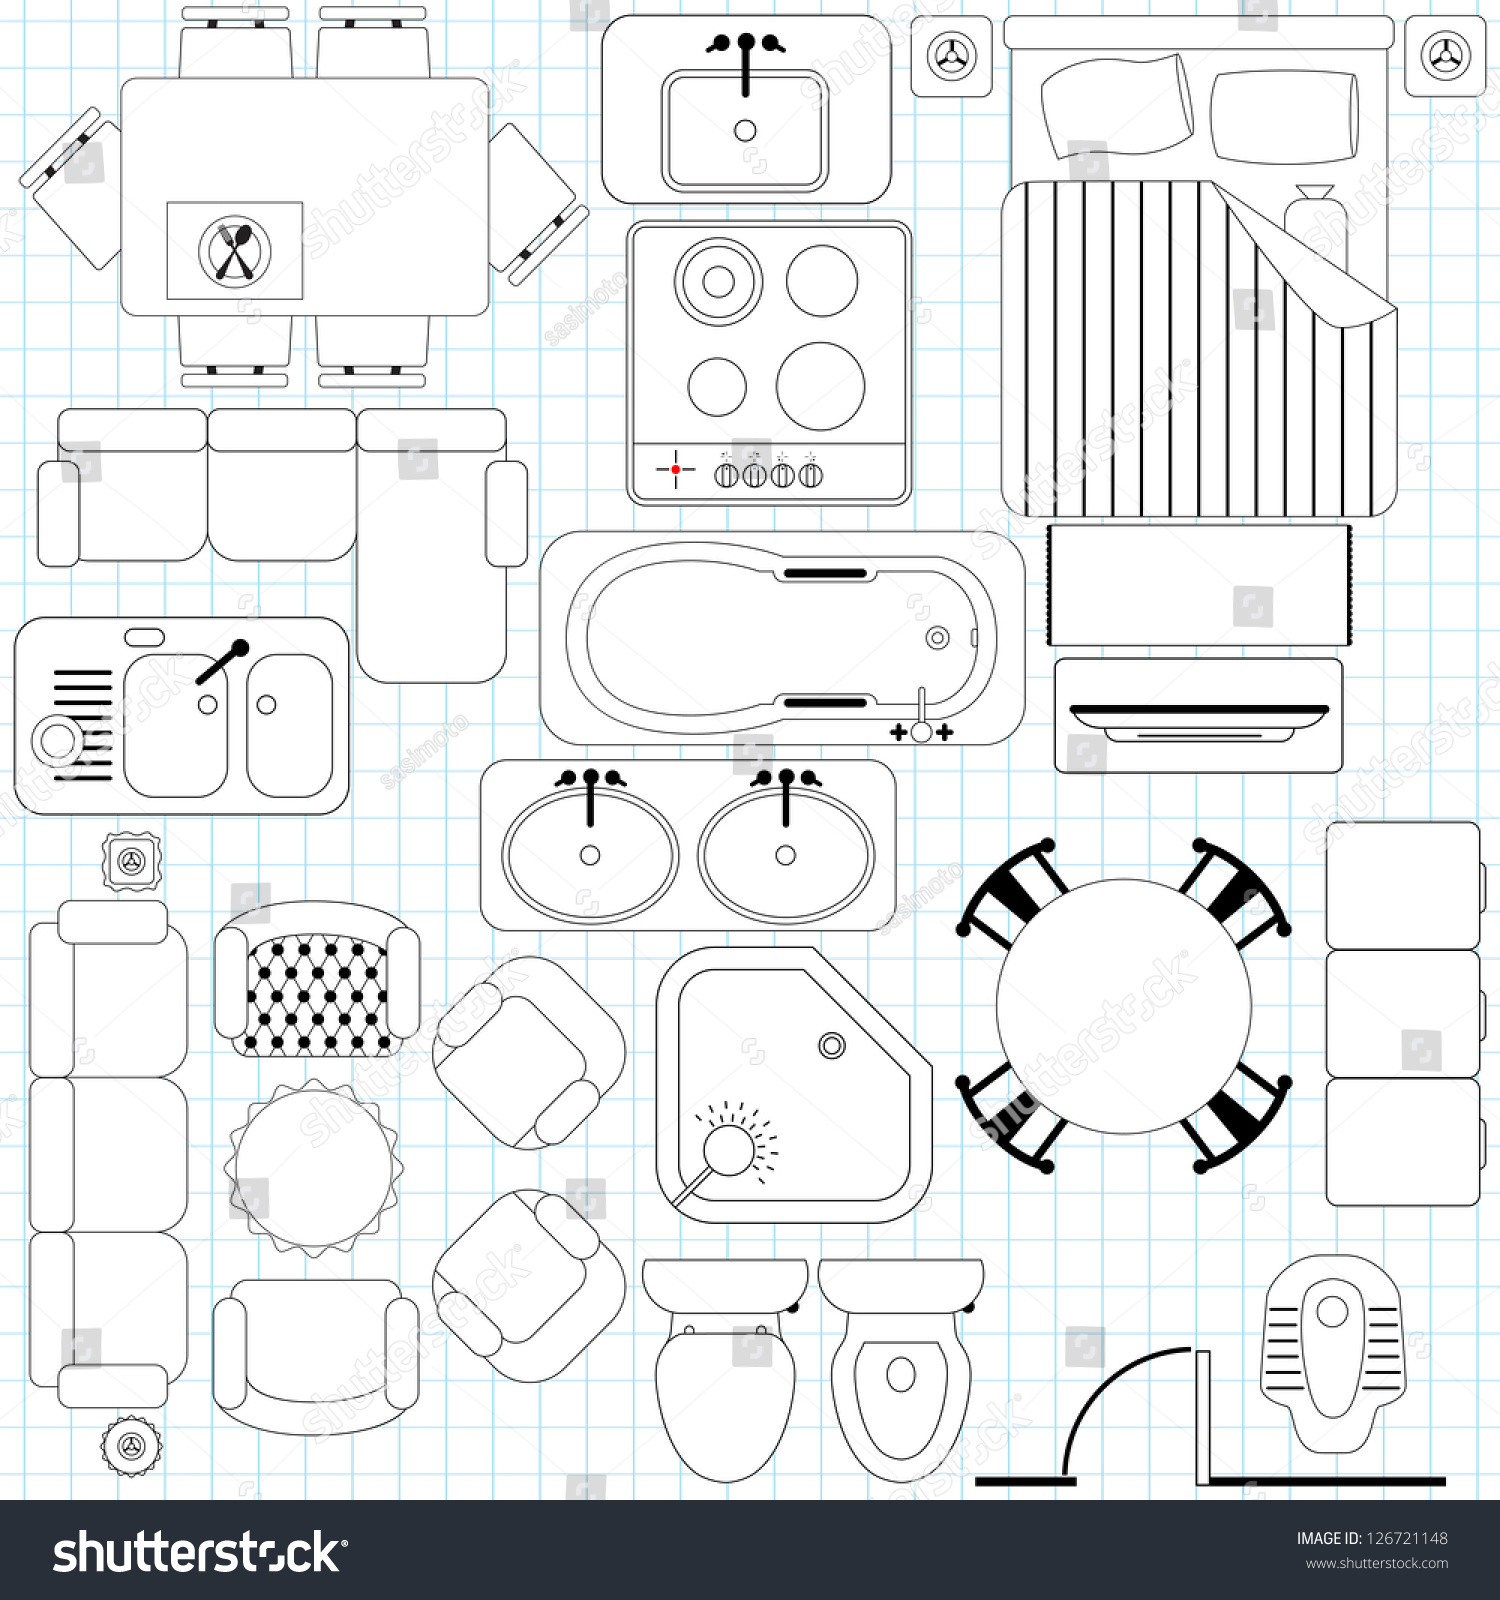 Toilet seat icon vector for Floor plan symbols